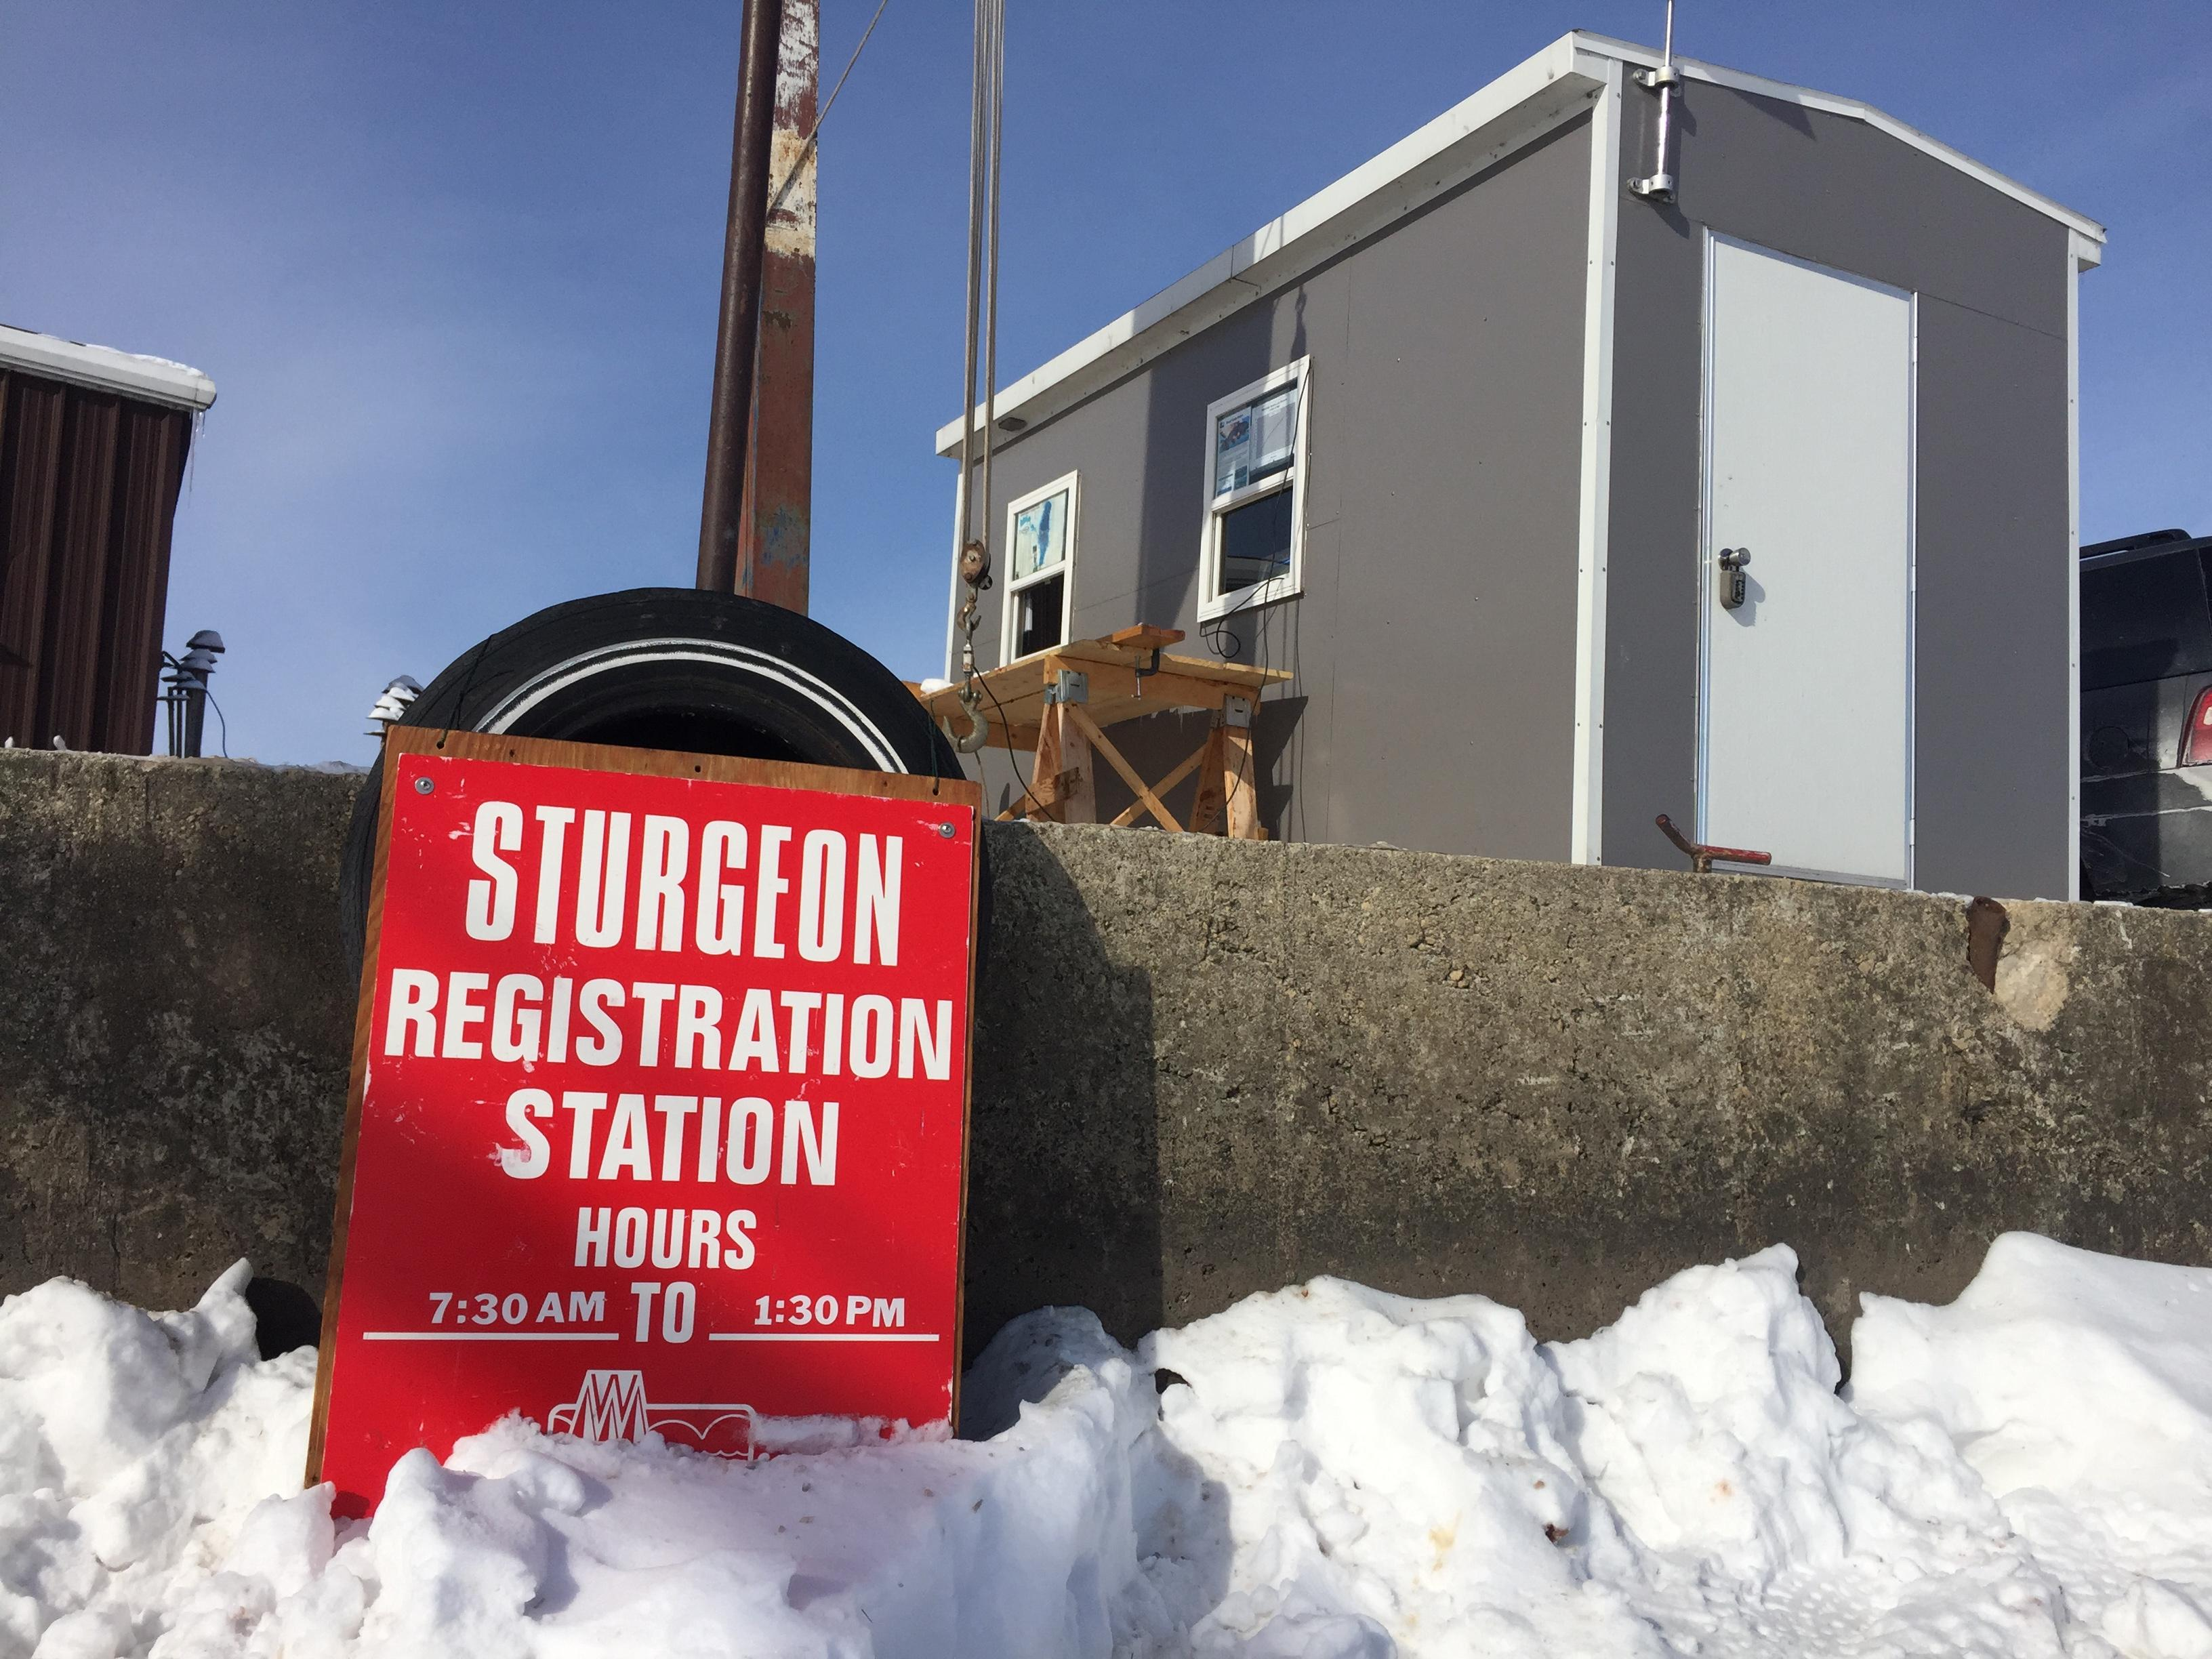 Sturgeon registration station at Wendt's on the Lake in Fond du Lac County, February 12, 2018 (WLUK/Eric Peterson)